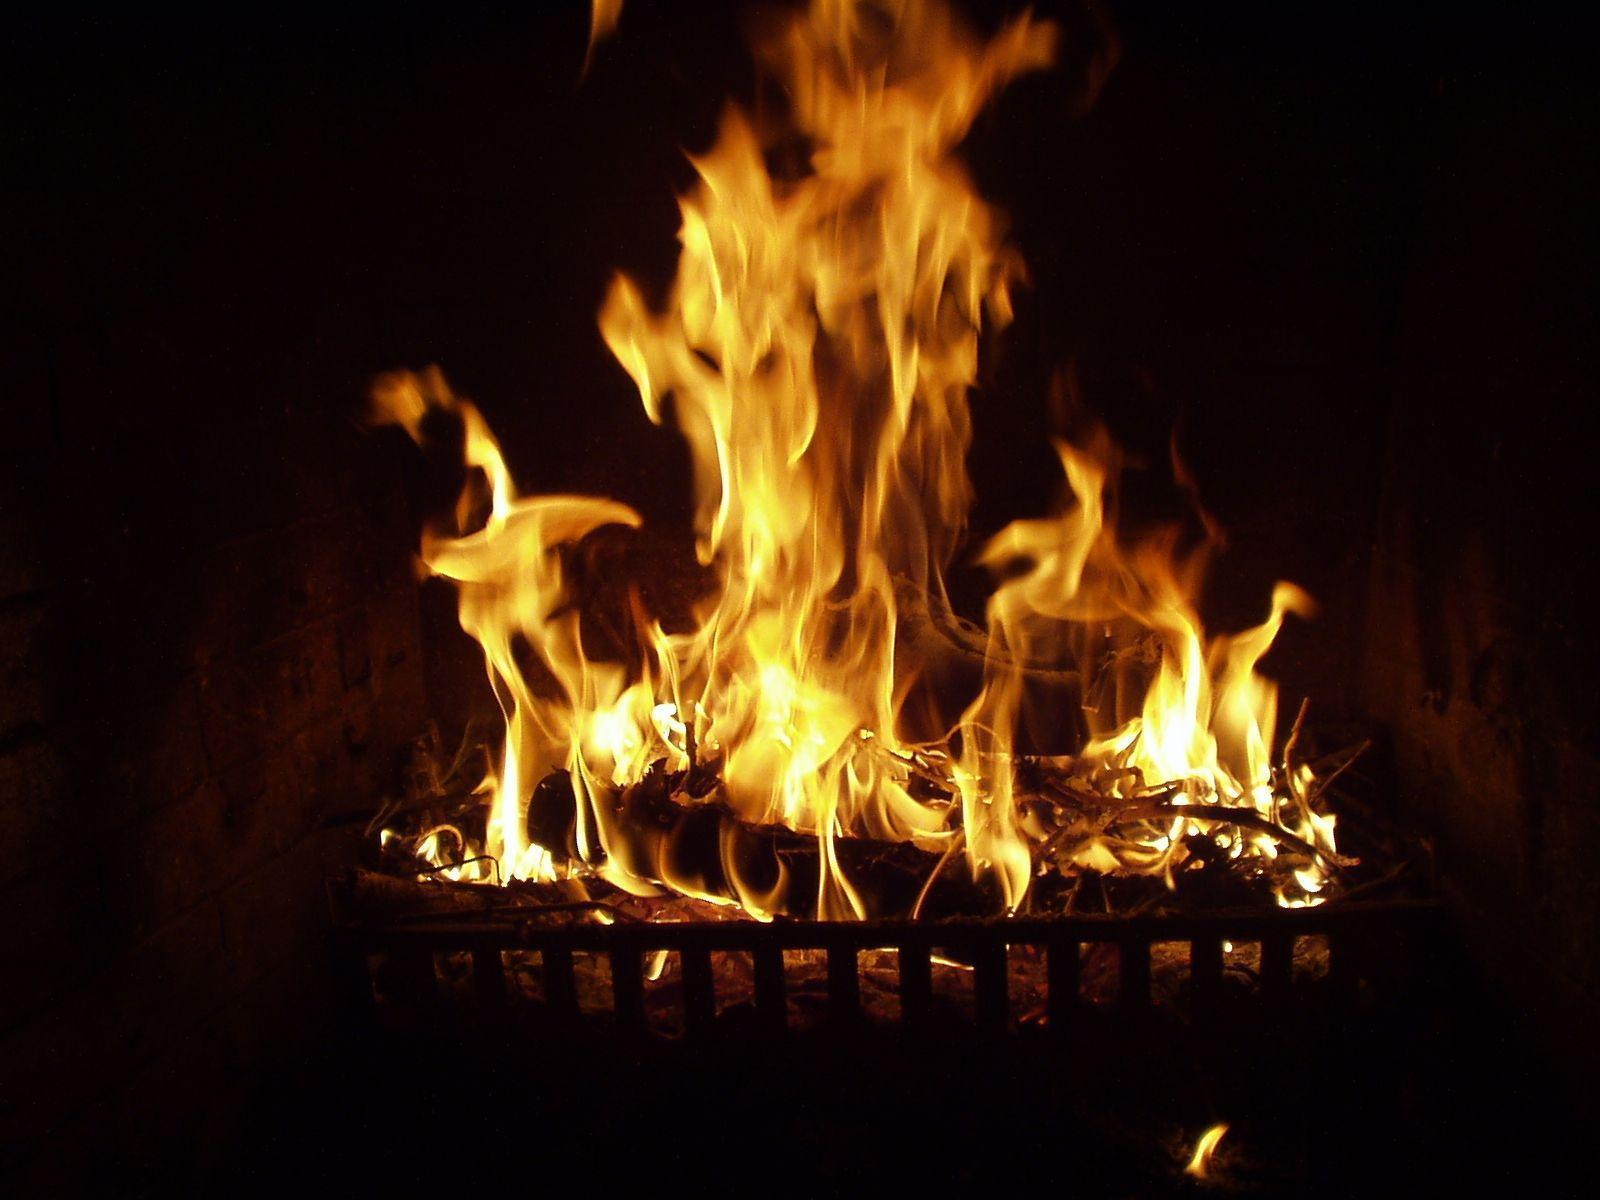 Fireplace Desktop Backgrounds - Wallpaper Cave